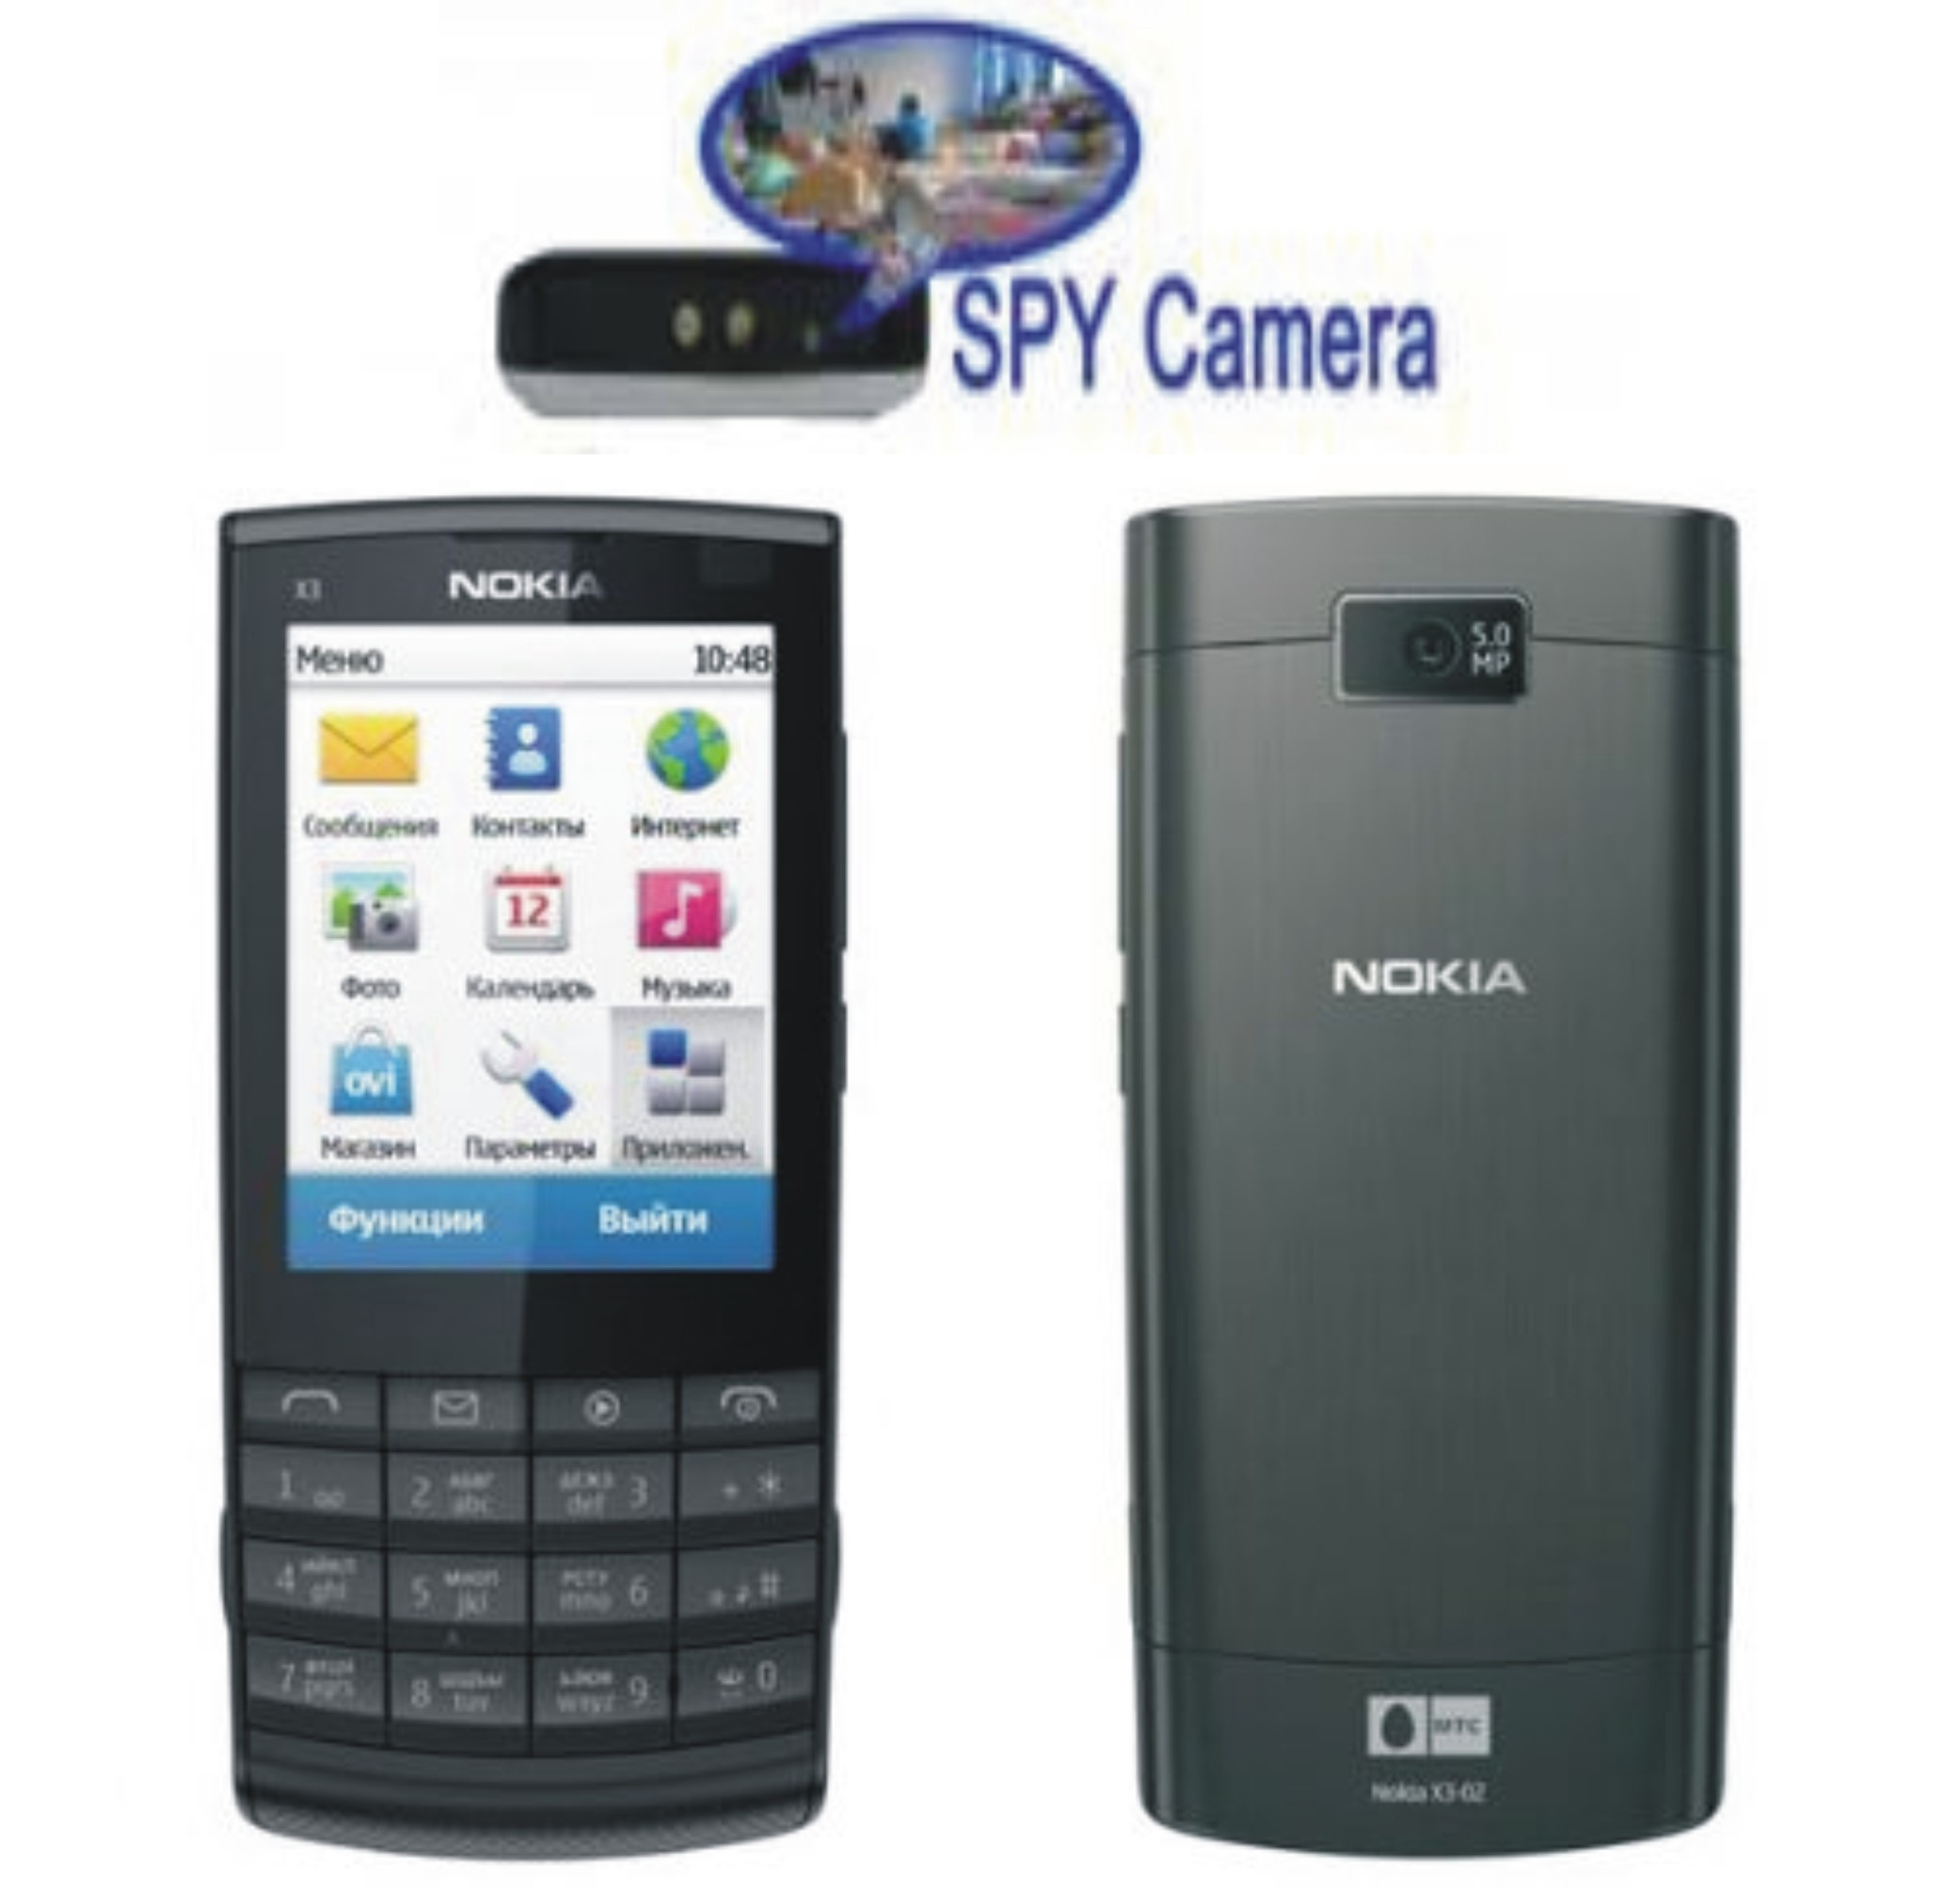 Spy Camera In Nokia Phone Touch Screen In Siwan